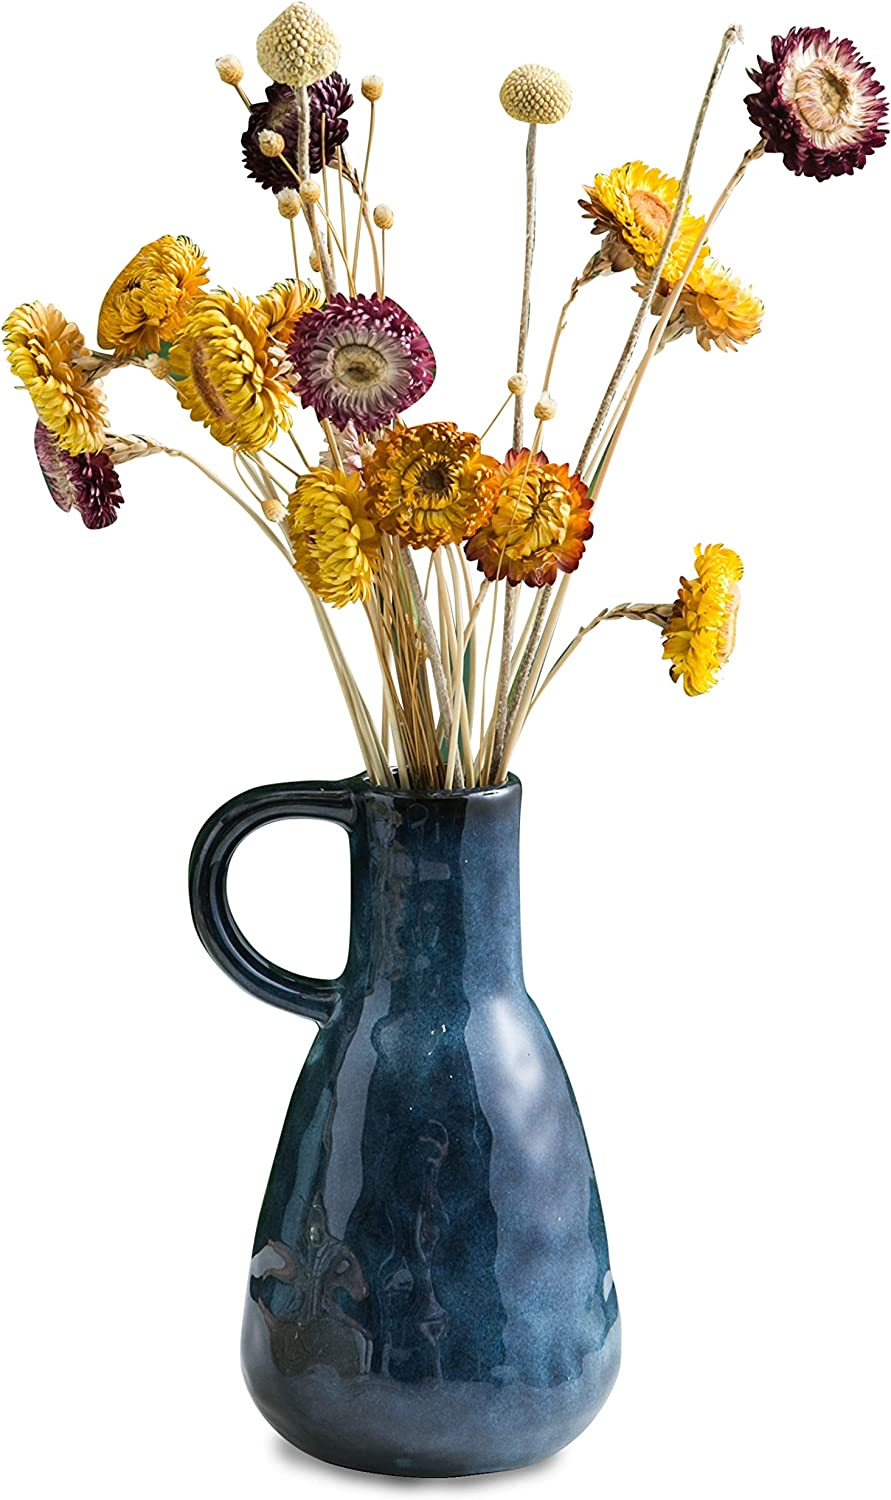 """Ceramic Vase, Decorative Vases, Glazed Blue Flower Vases with Handle for Home Décor, Centerpieces, Kitchen, Office, Wedding or Living Room, Blue Color, 8"""" Tall"""